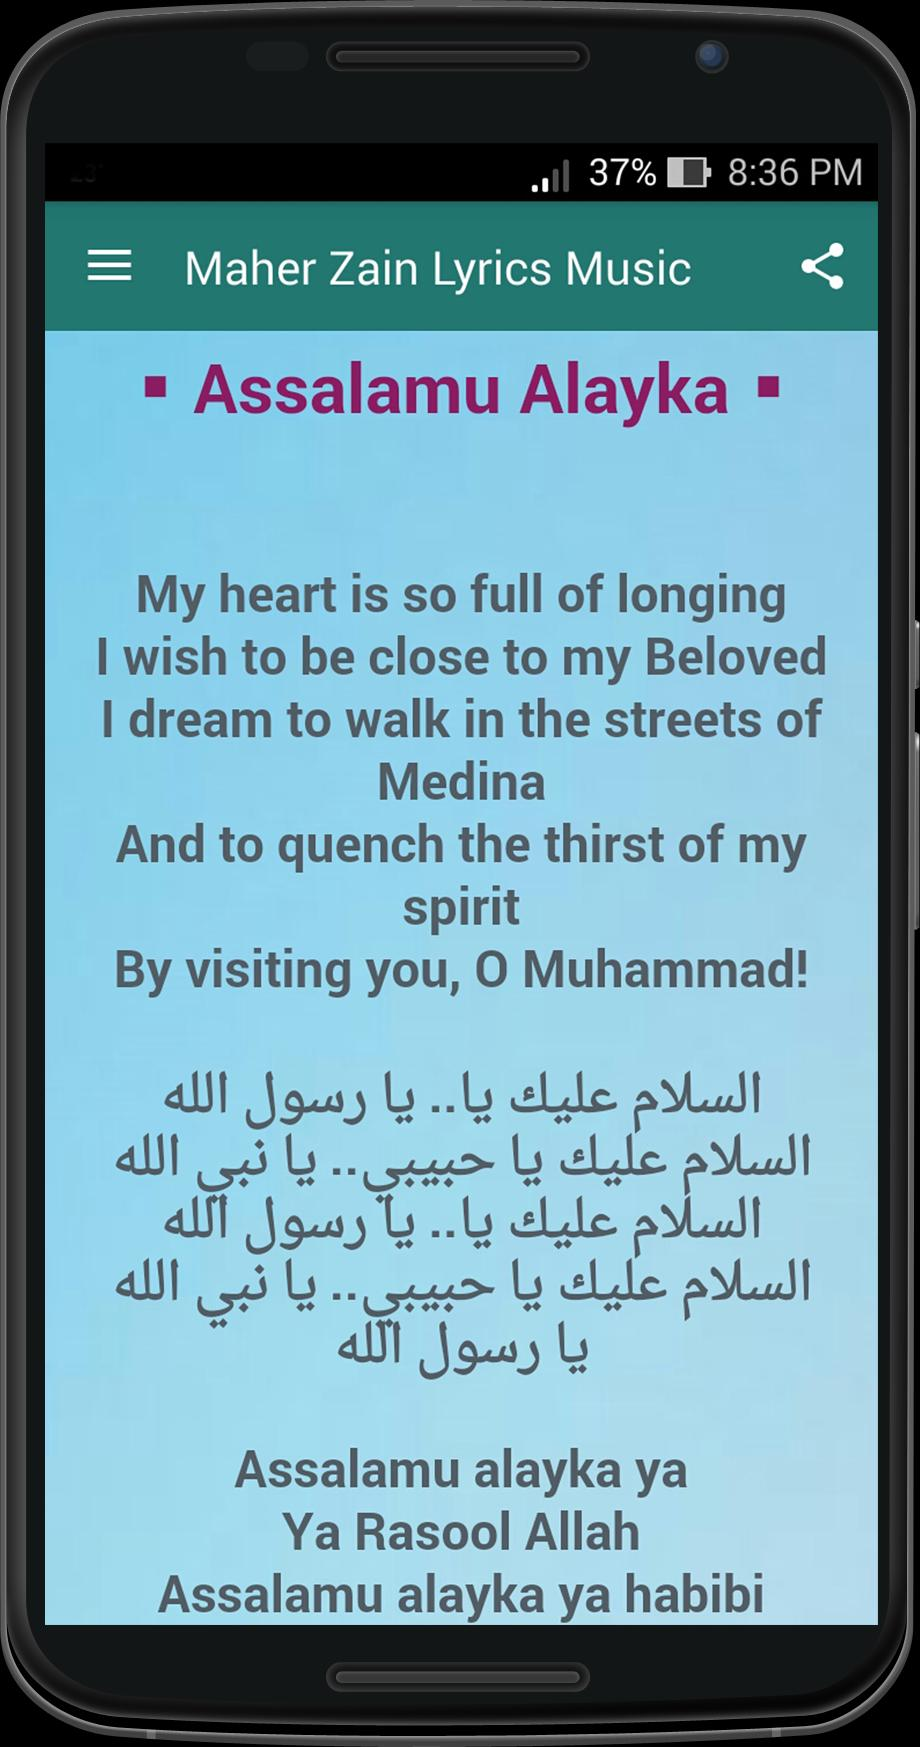 Maher Zain Lyrics Music for Android - APK Download